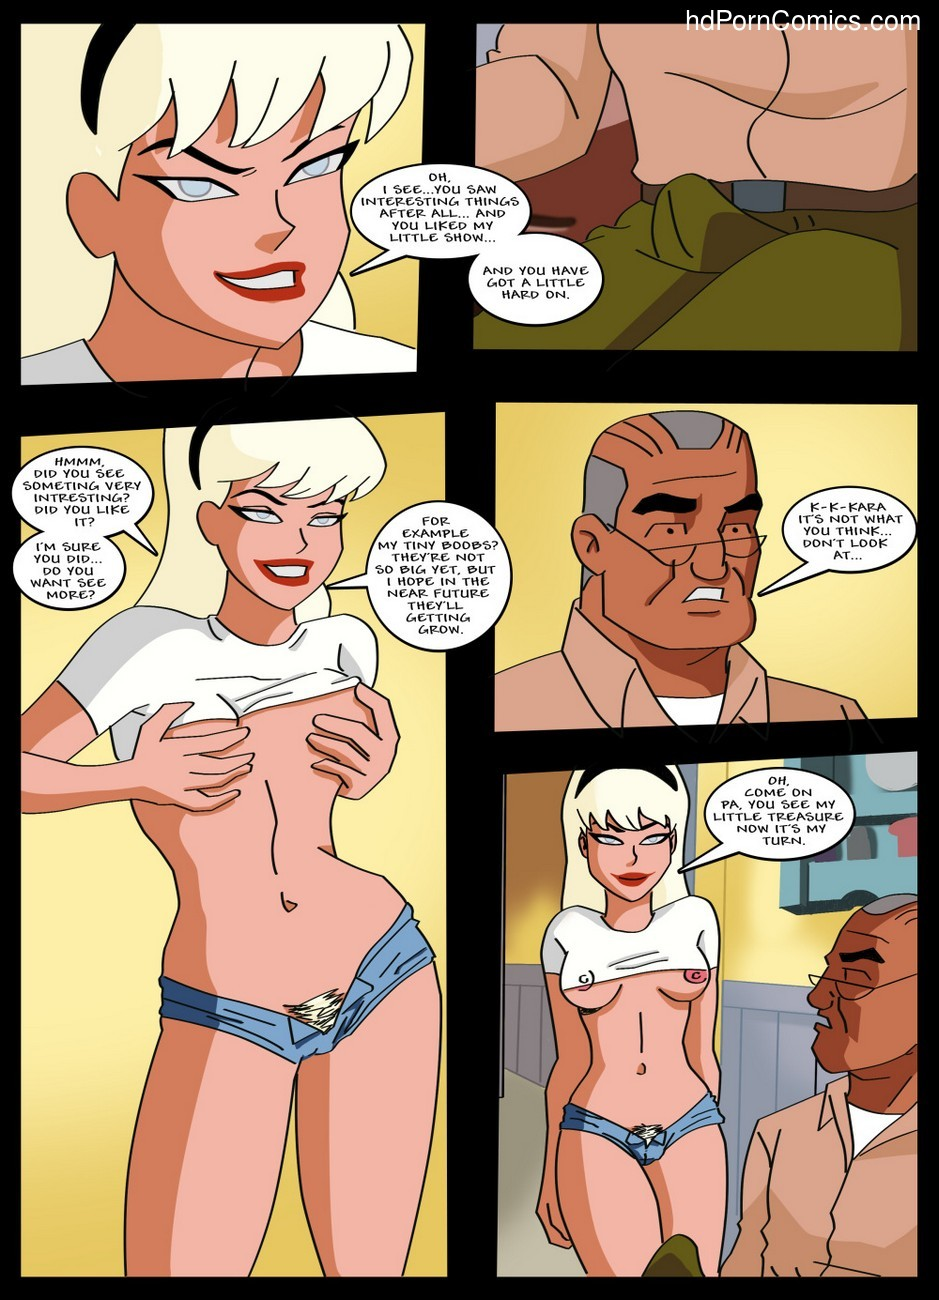 Supergirl Adventures 1 - Horny Little Girl 6 free sex comic